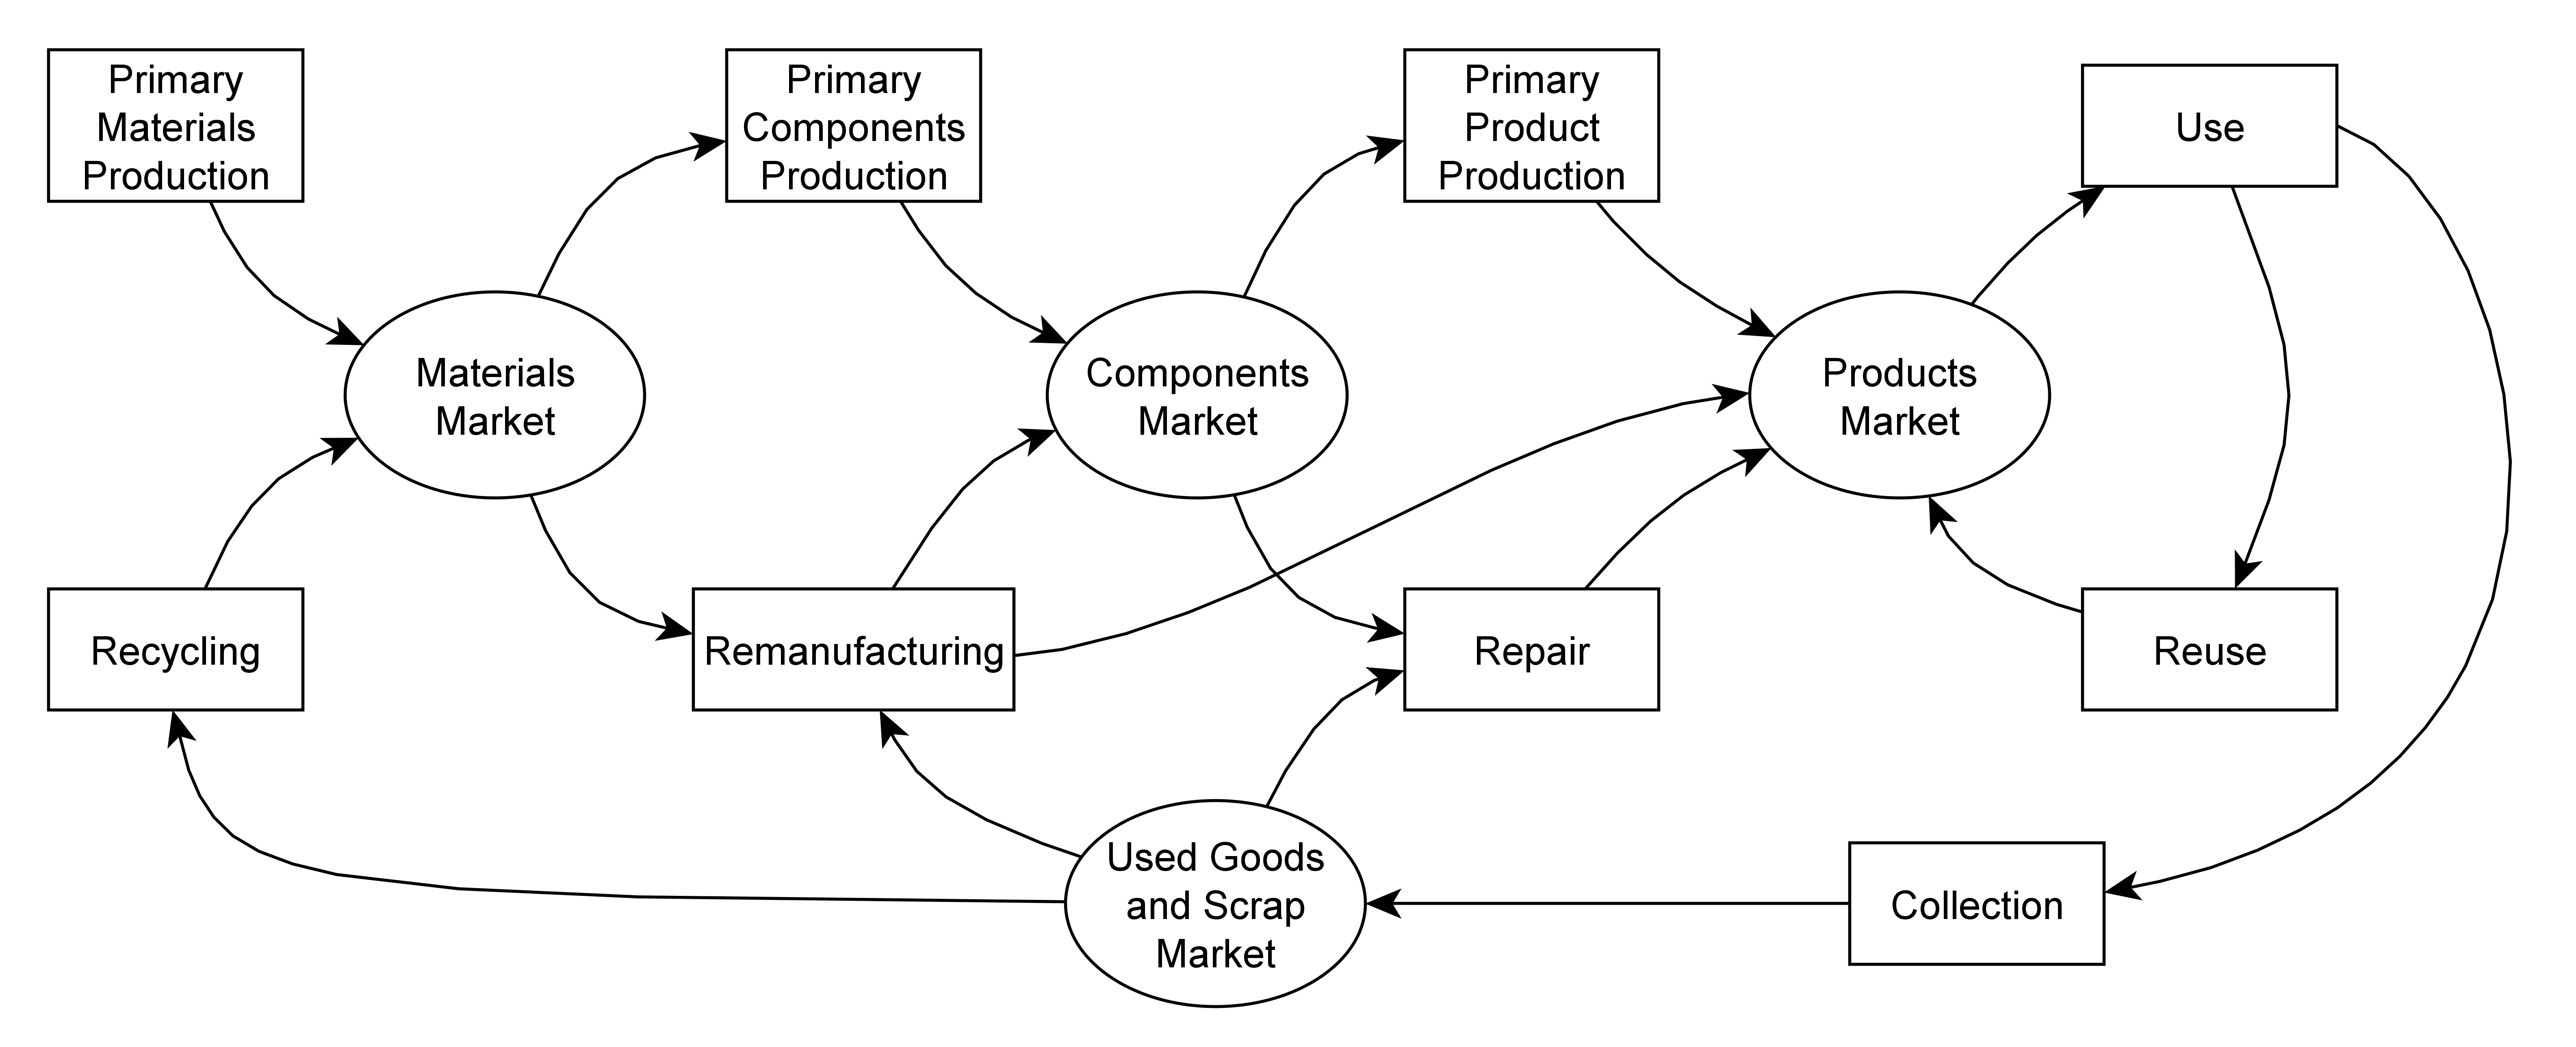 Figure 1: The circular economy diagram depicted more realistically, with markets mediating each step